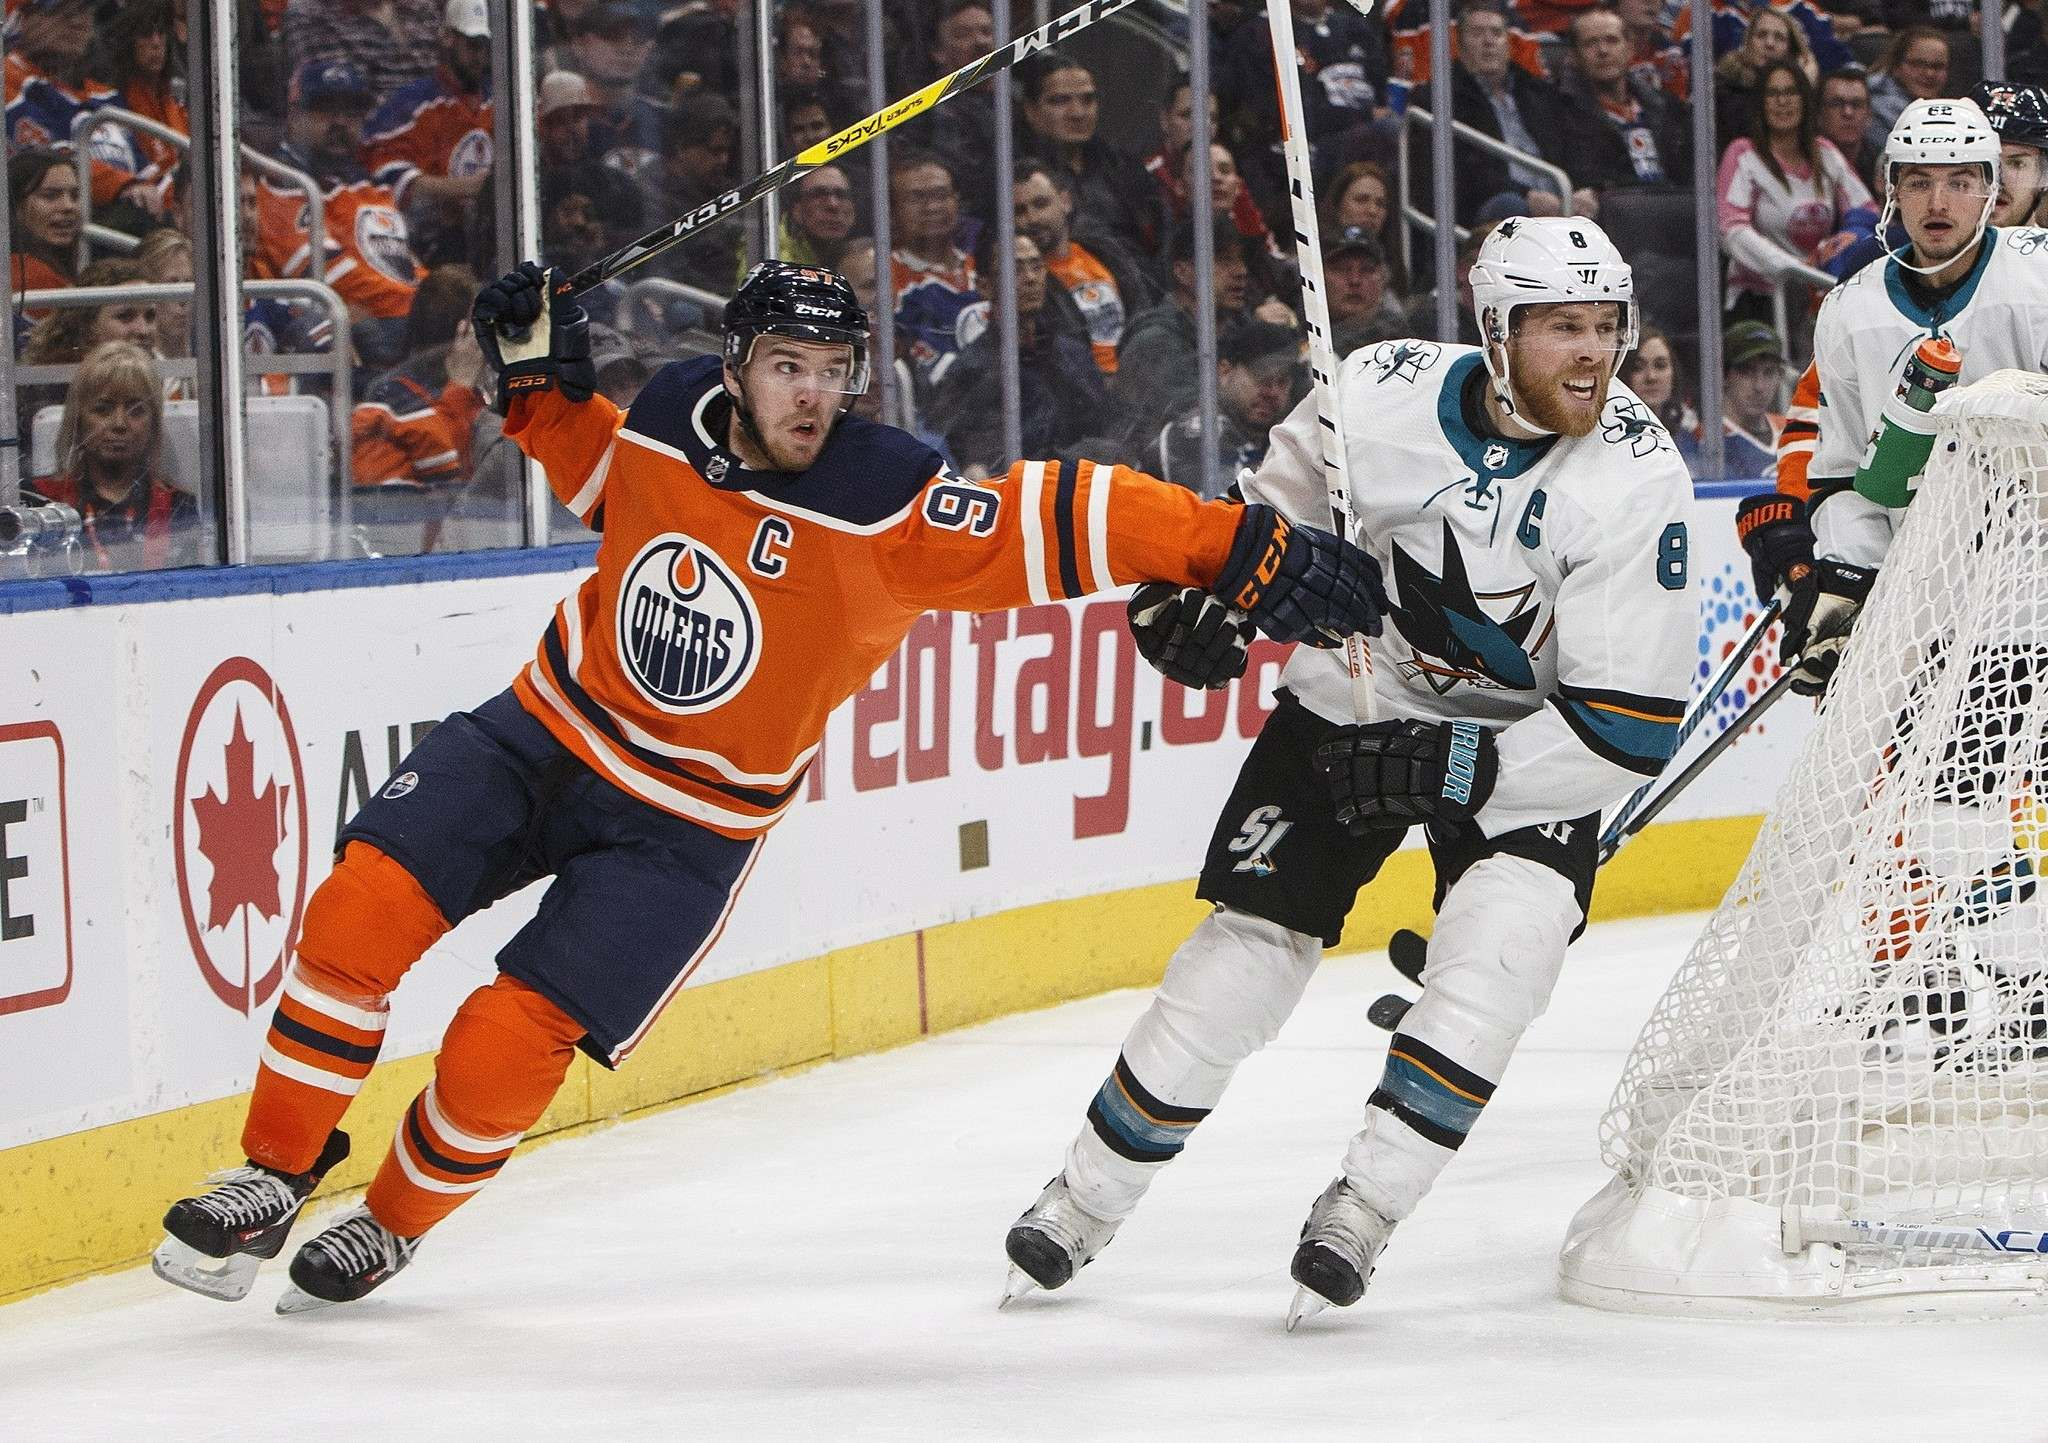 Armia nets 2, Jets top Oilers 4-3 despite Scheifele's injury